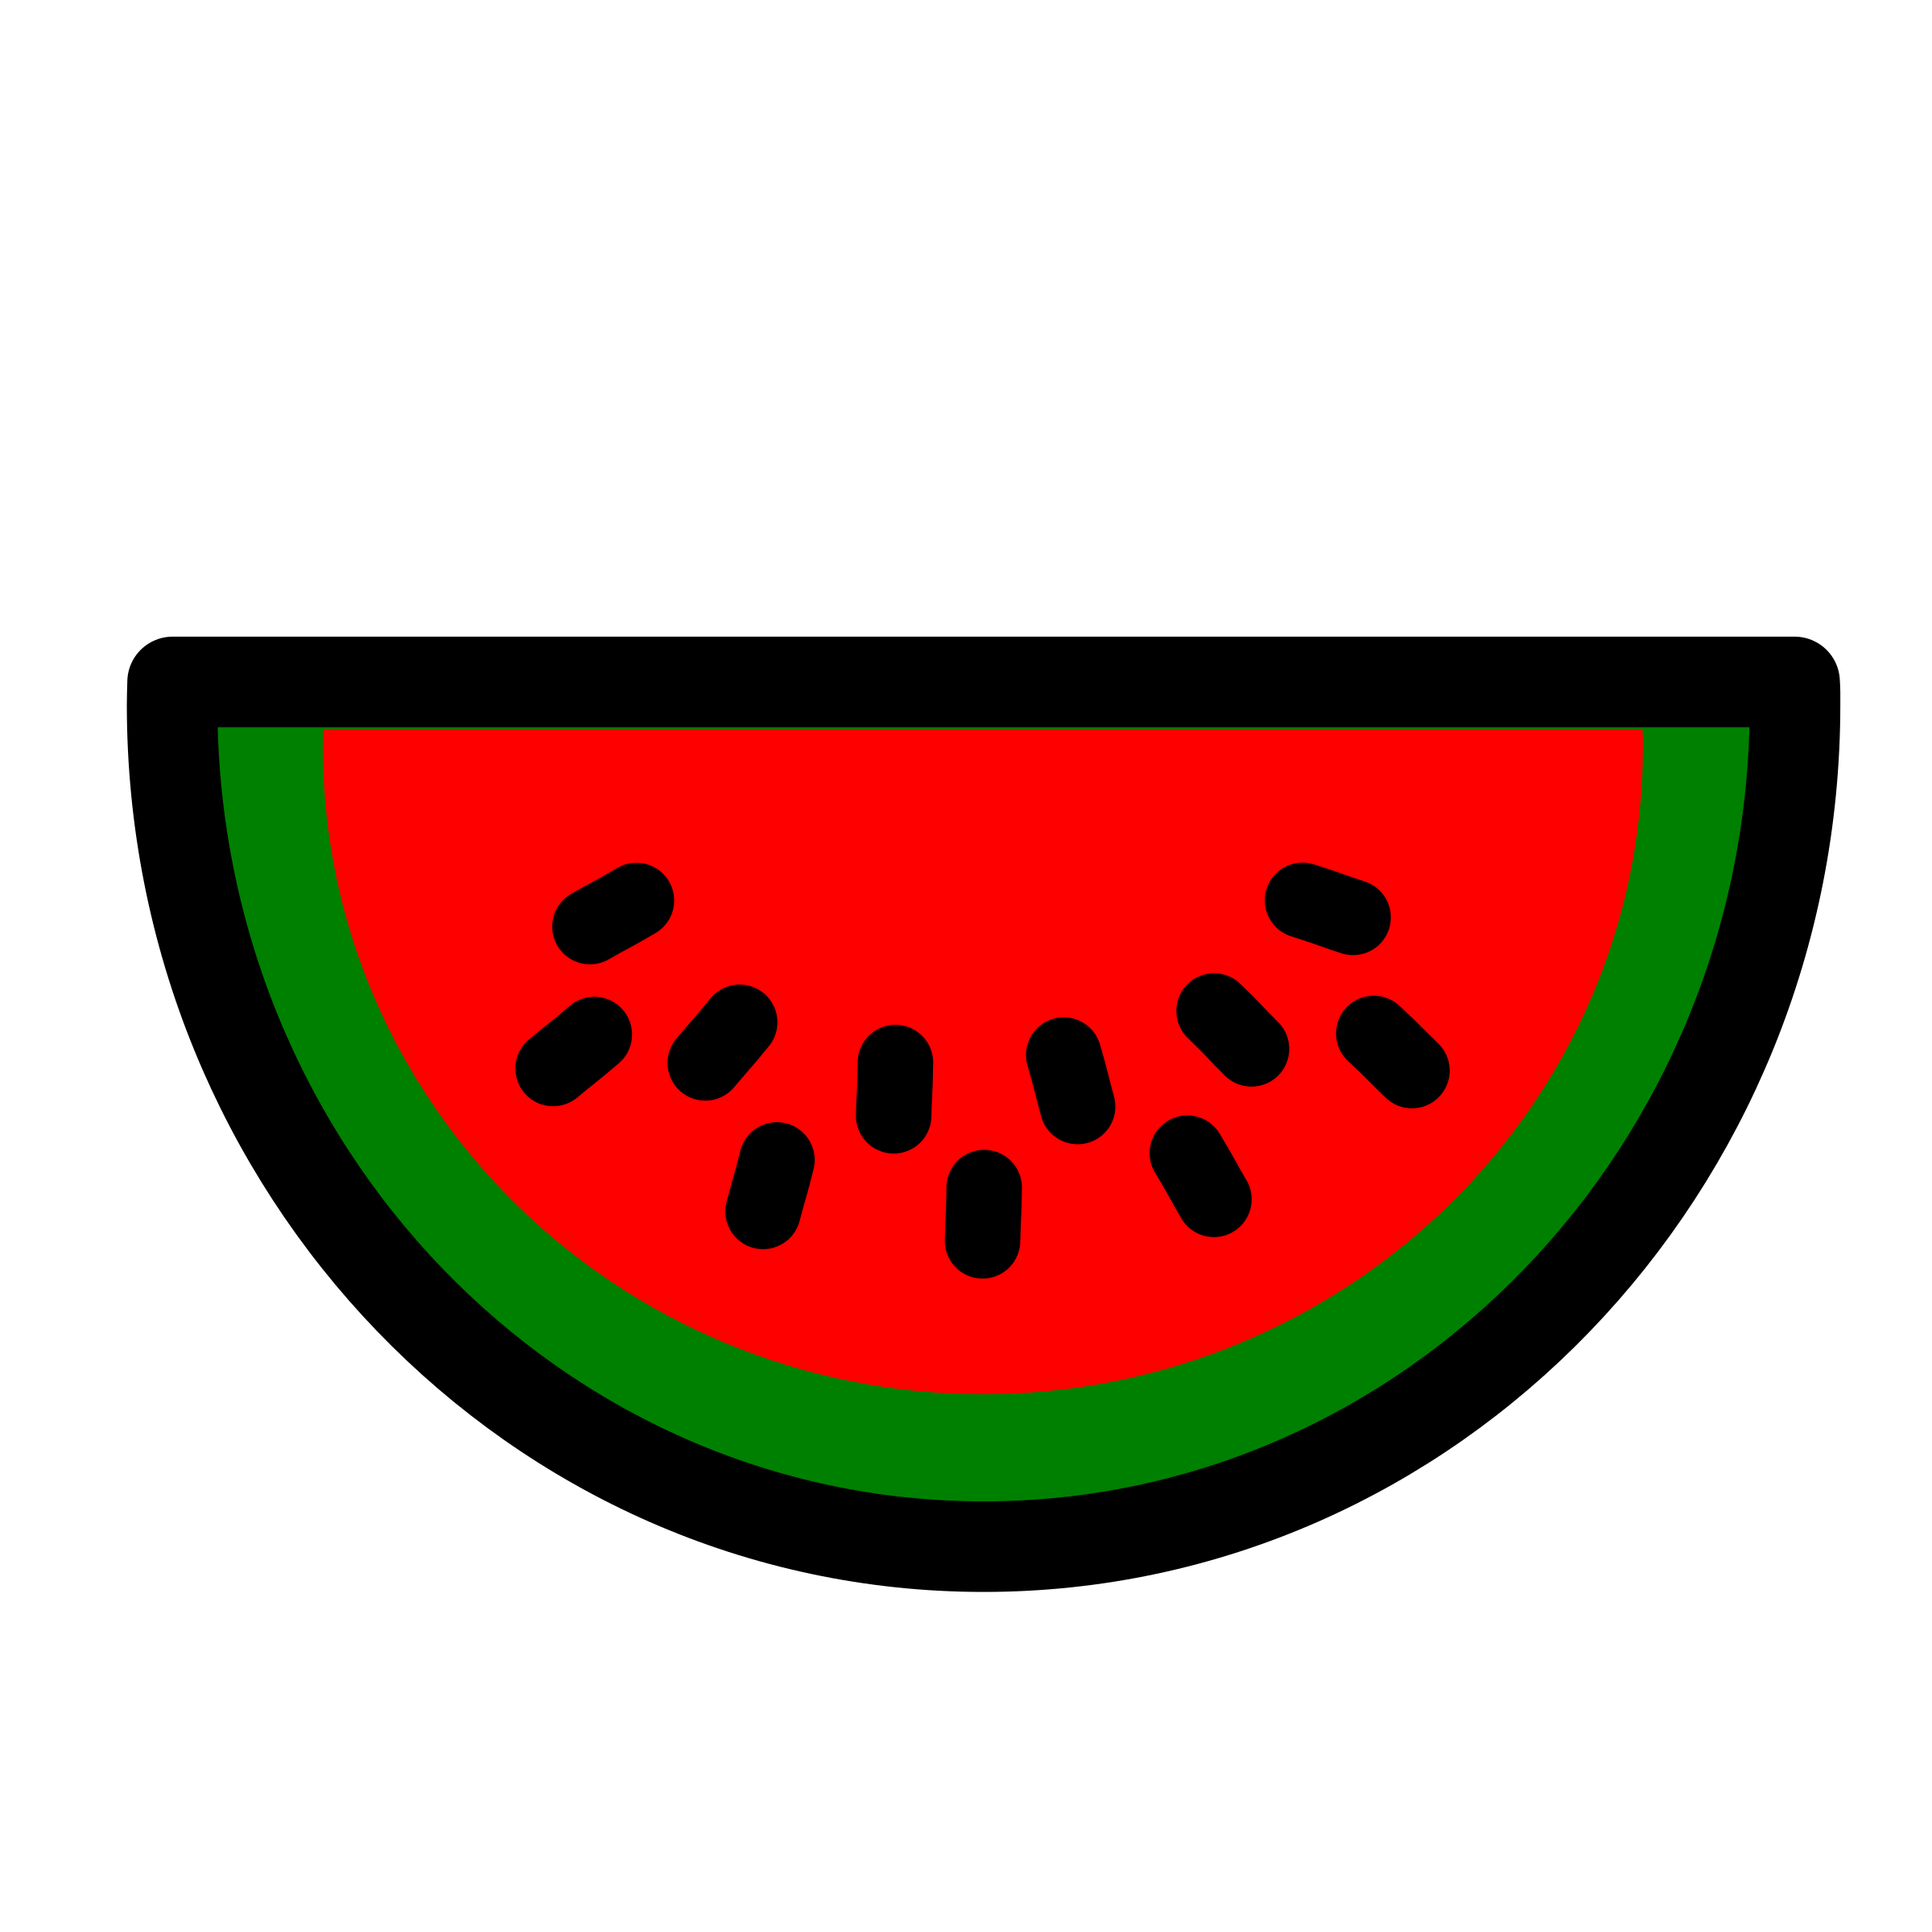 Icon icons png free. Watermelon clipart small watermelon